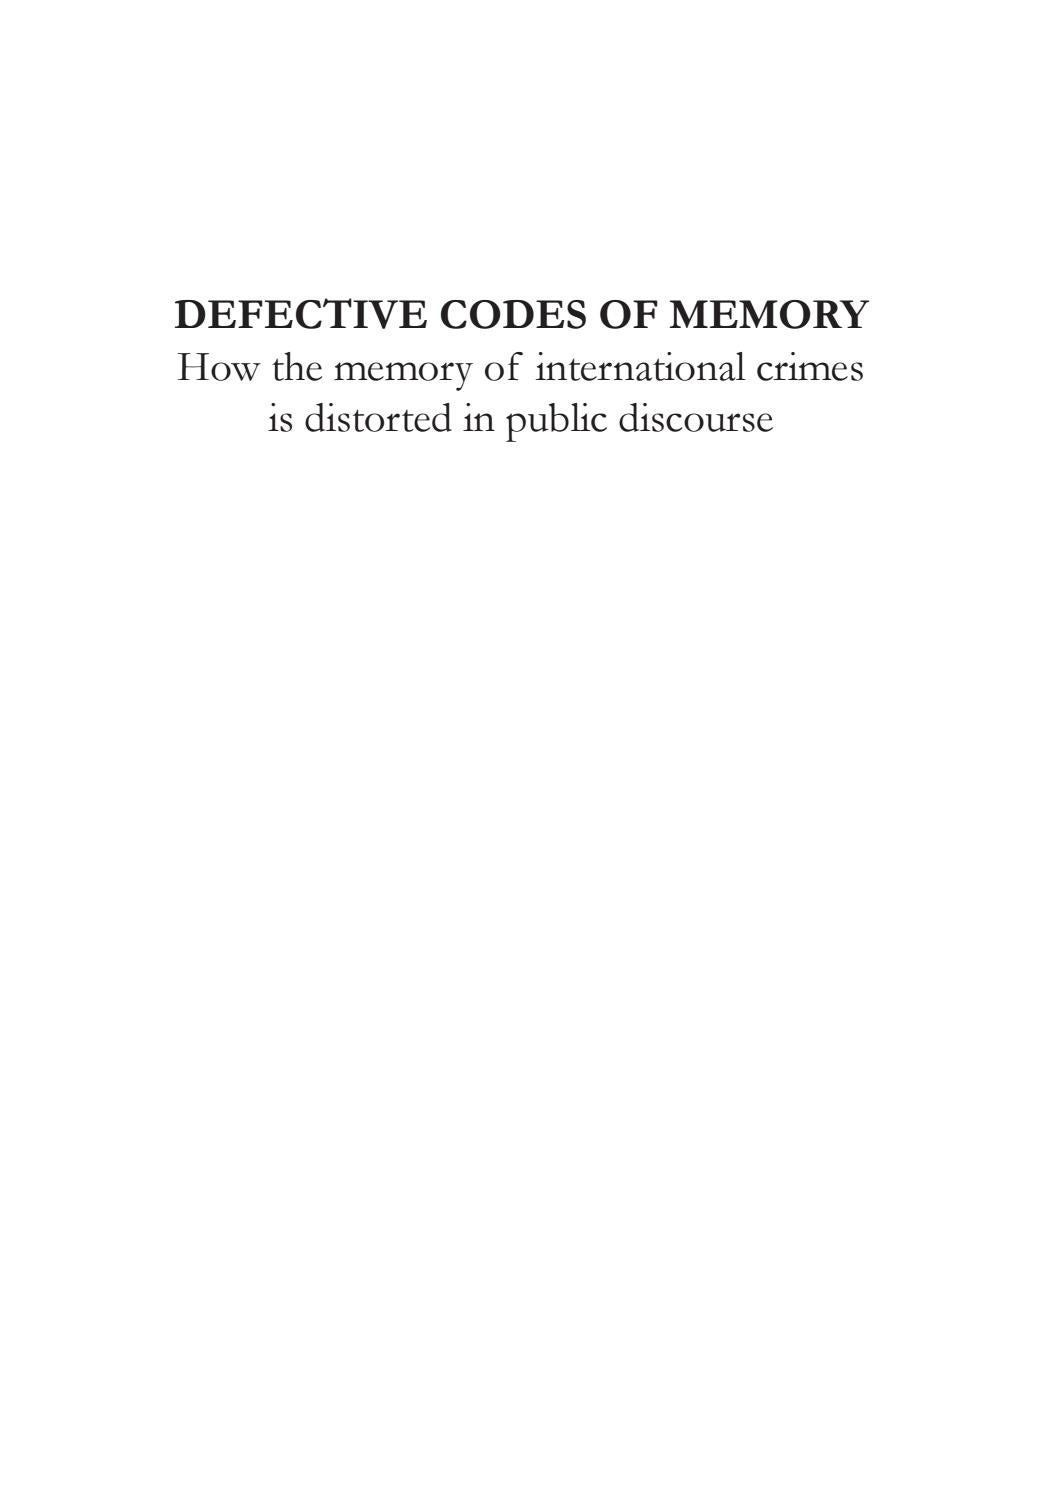 Defective codes of memory by Ministry of Foreign Affairs of